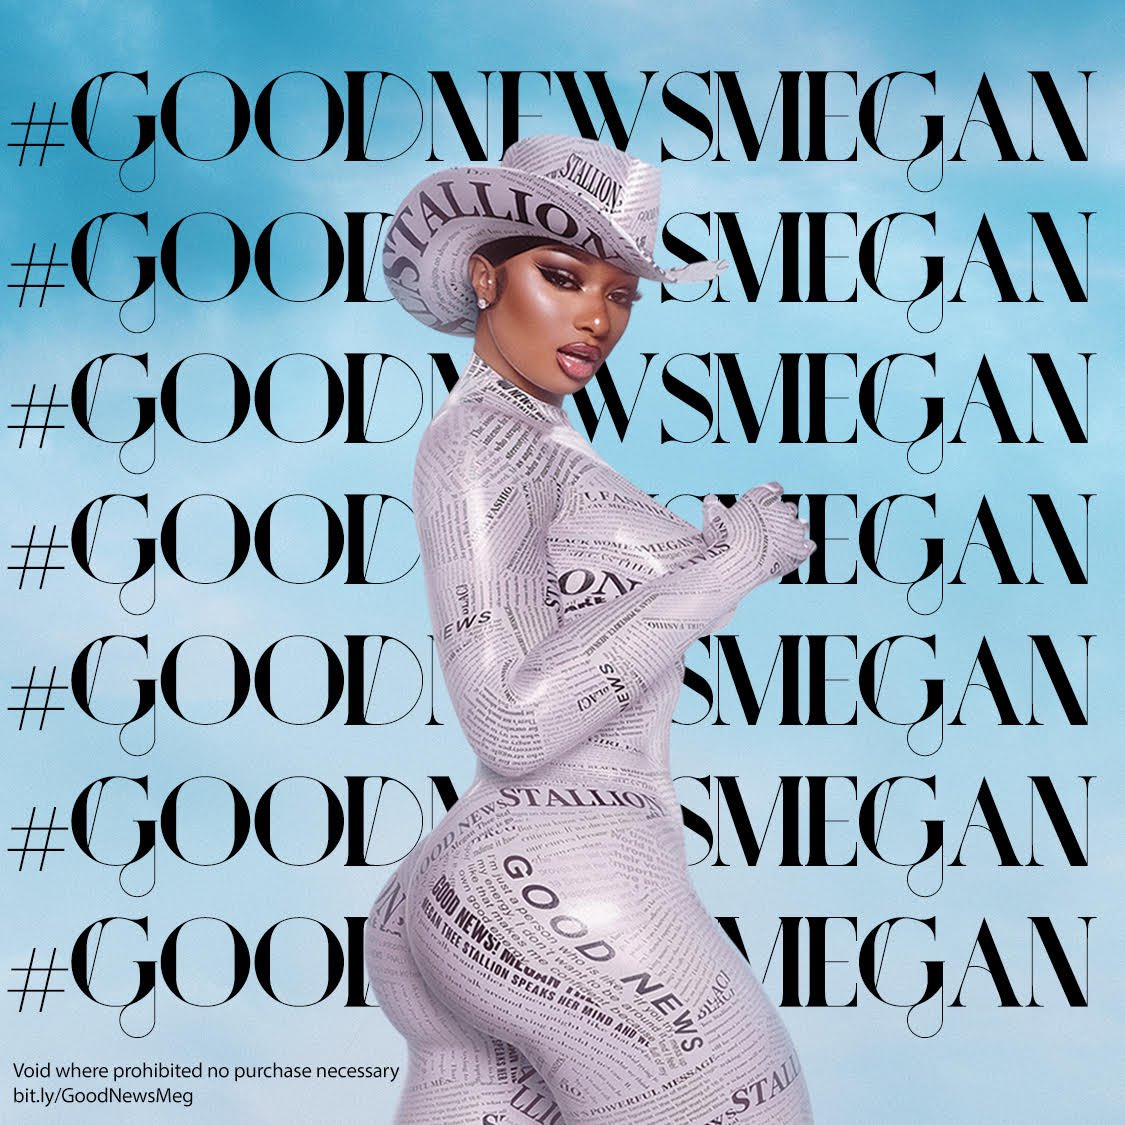 @theestallion's photo on #GOODNEWSMEGAN